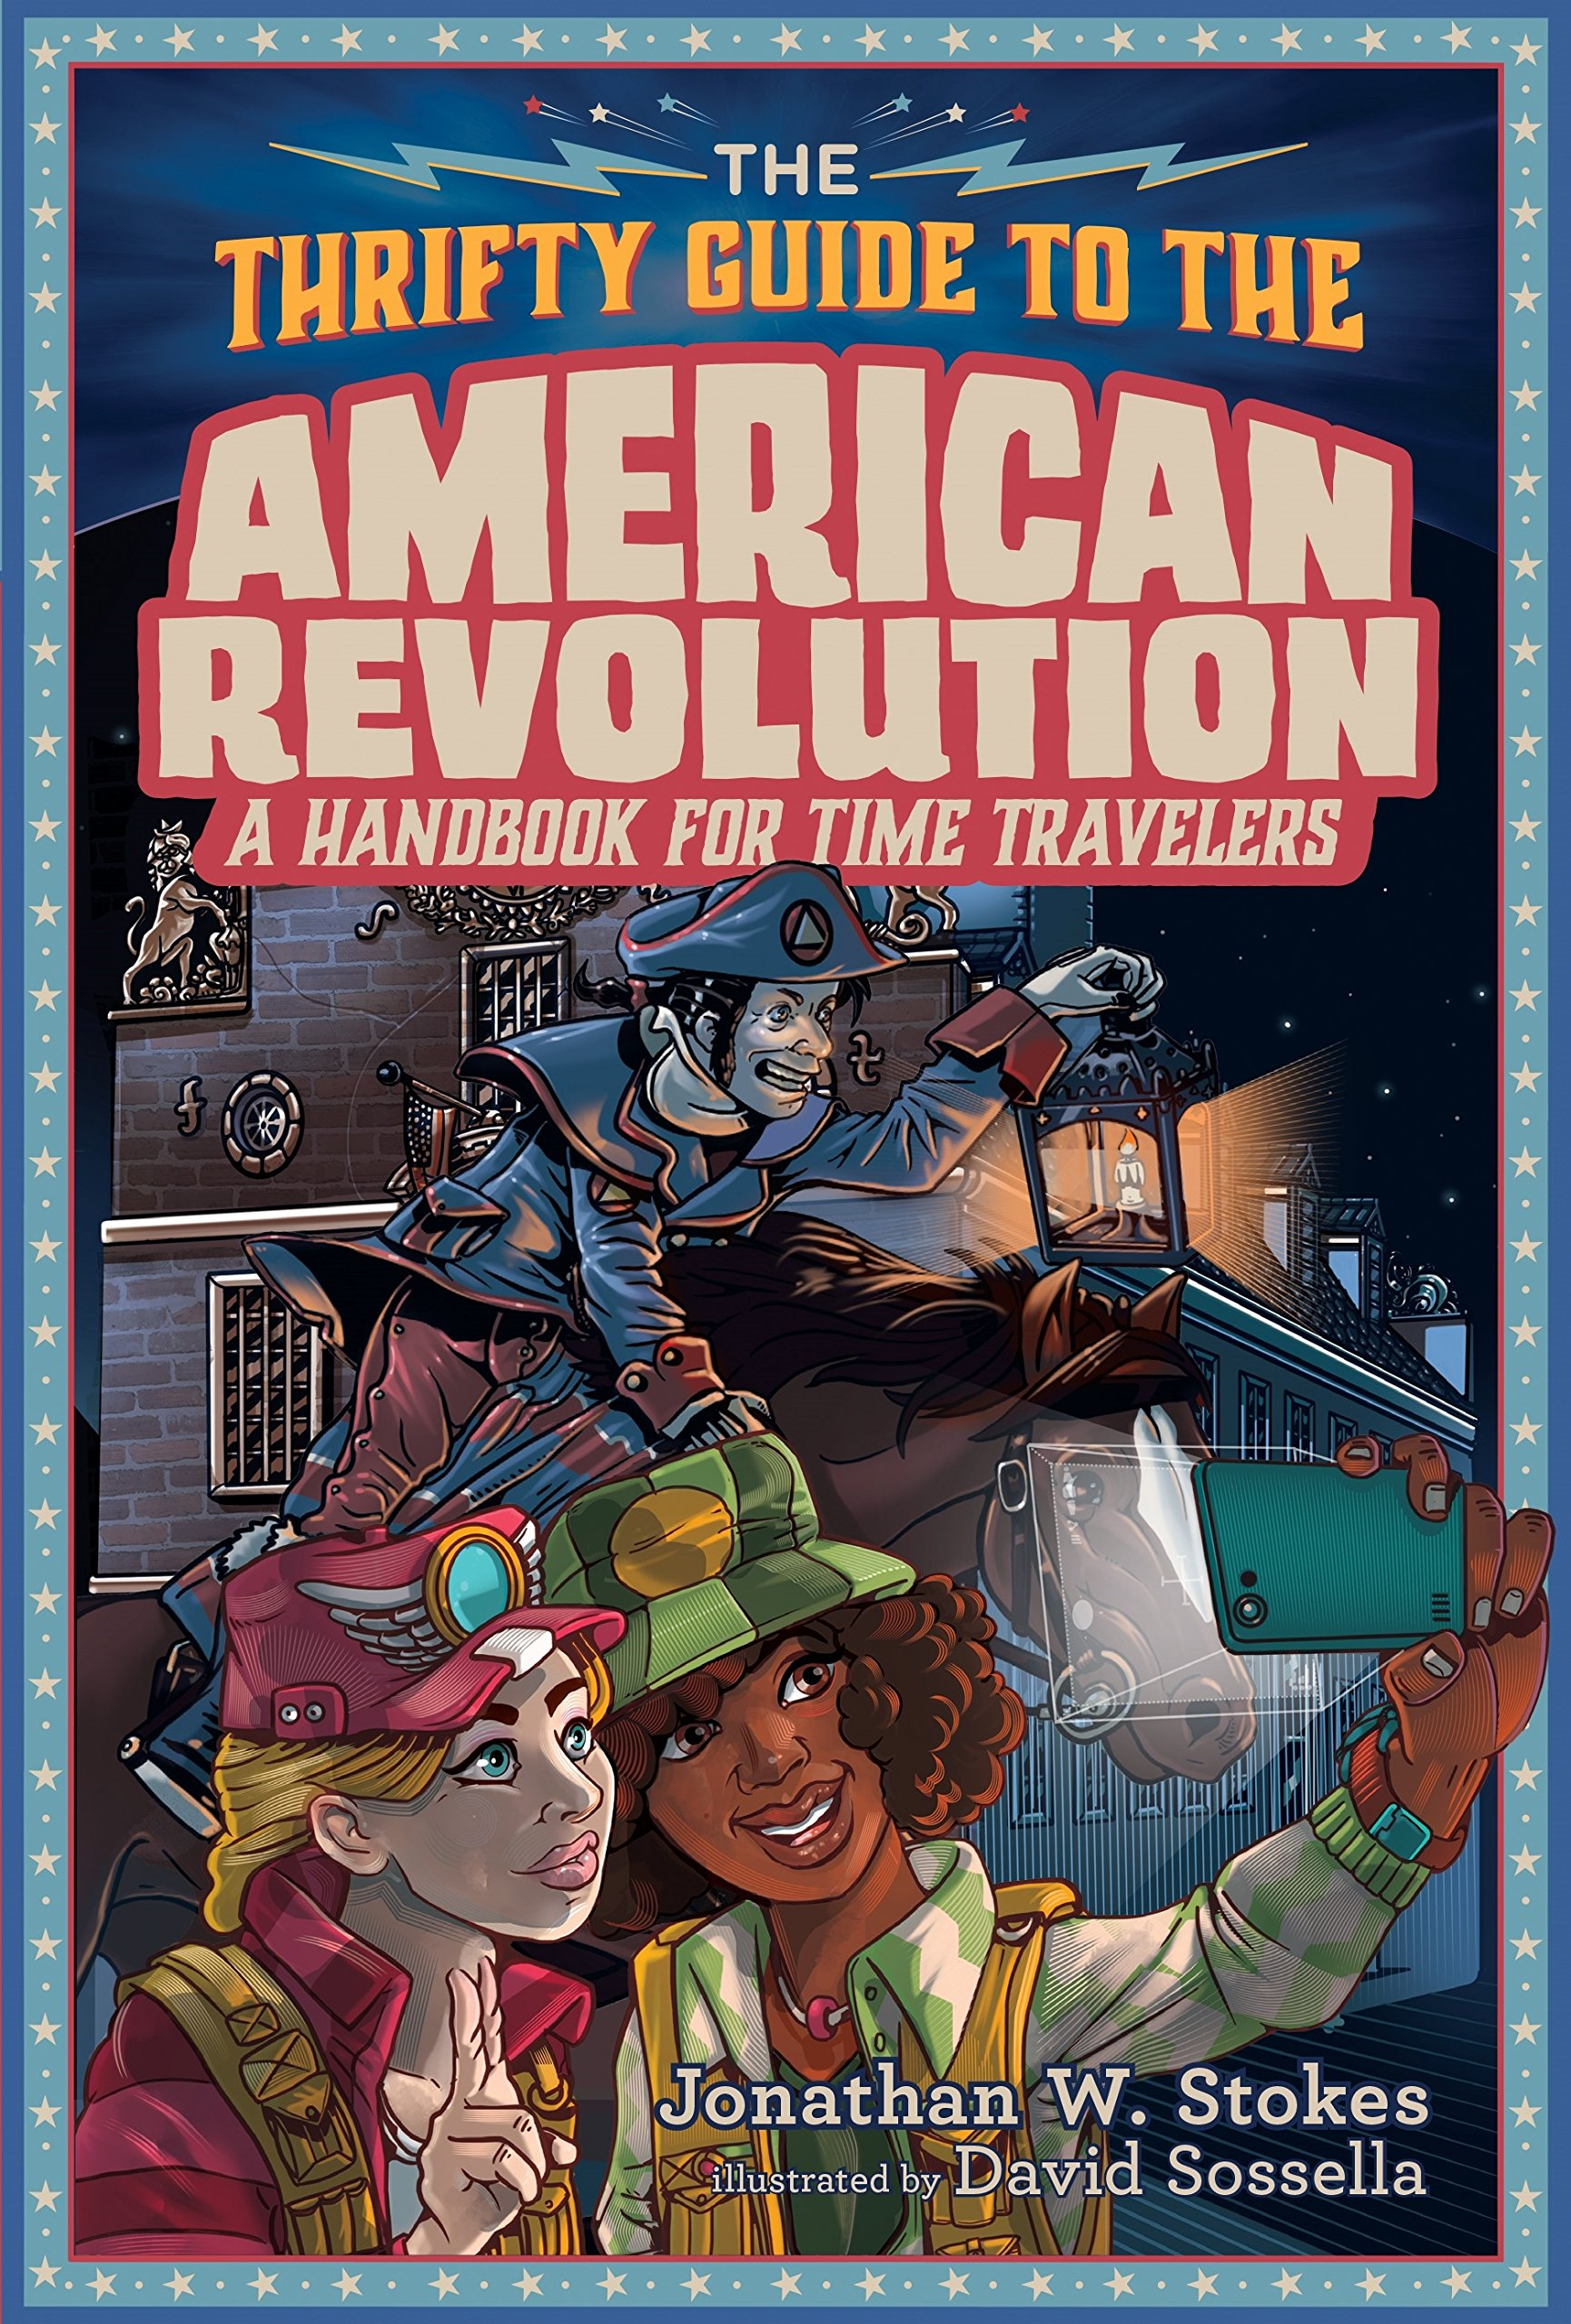 The Thrifty Guide to the American Revolution: A Handbook for Time Travelers